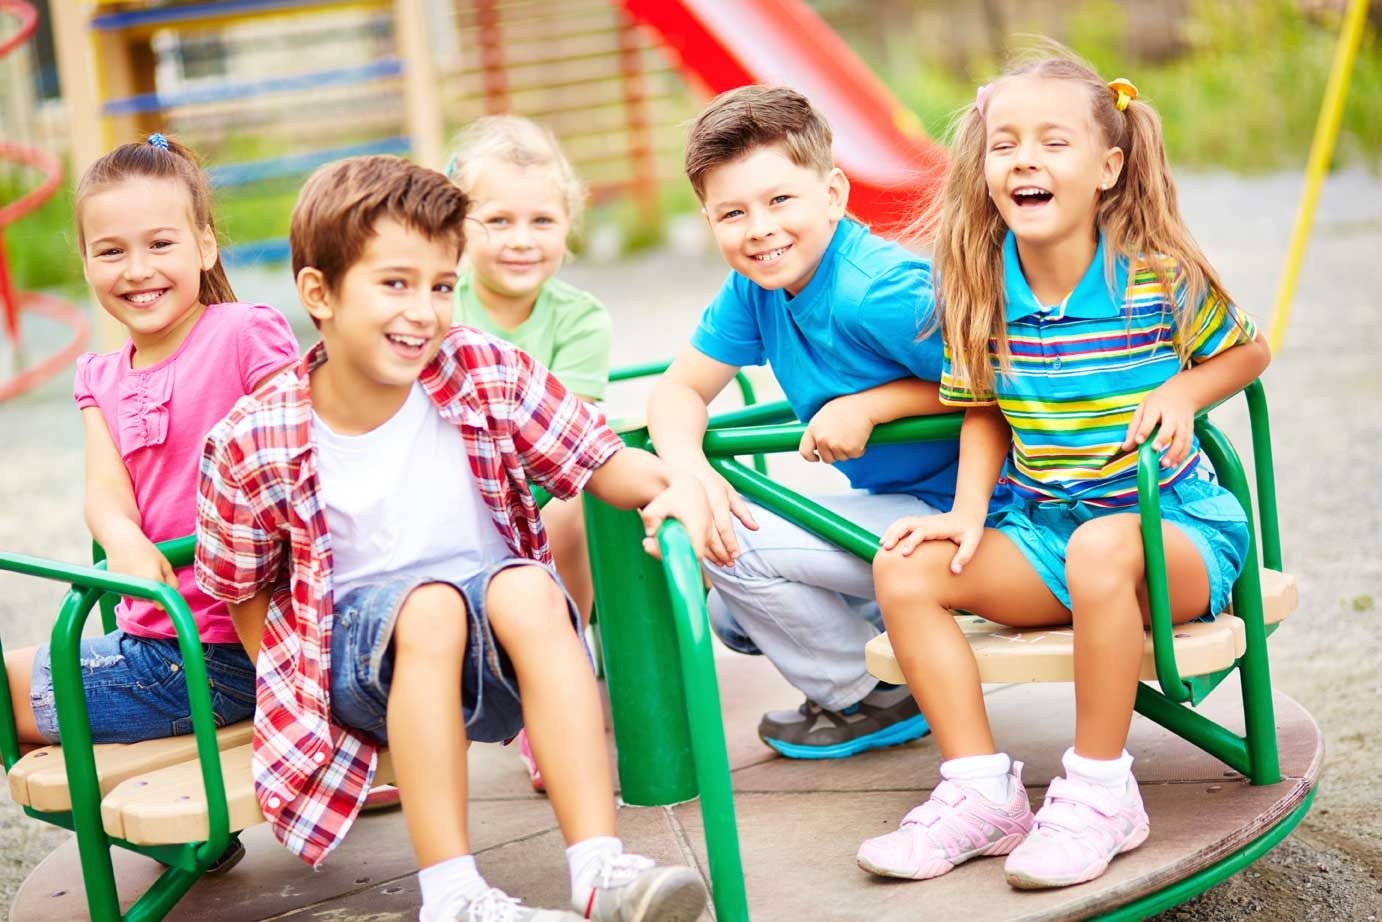 Playground Safety Week 2018: 10 Playground Safety Tips From the